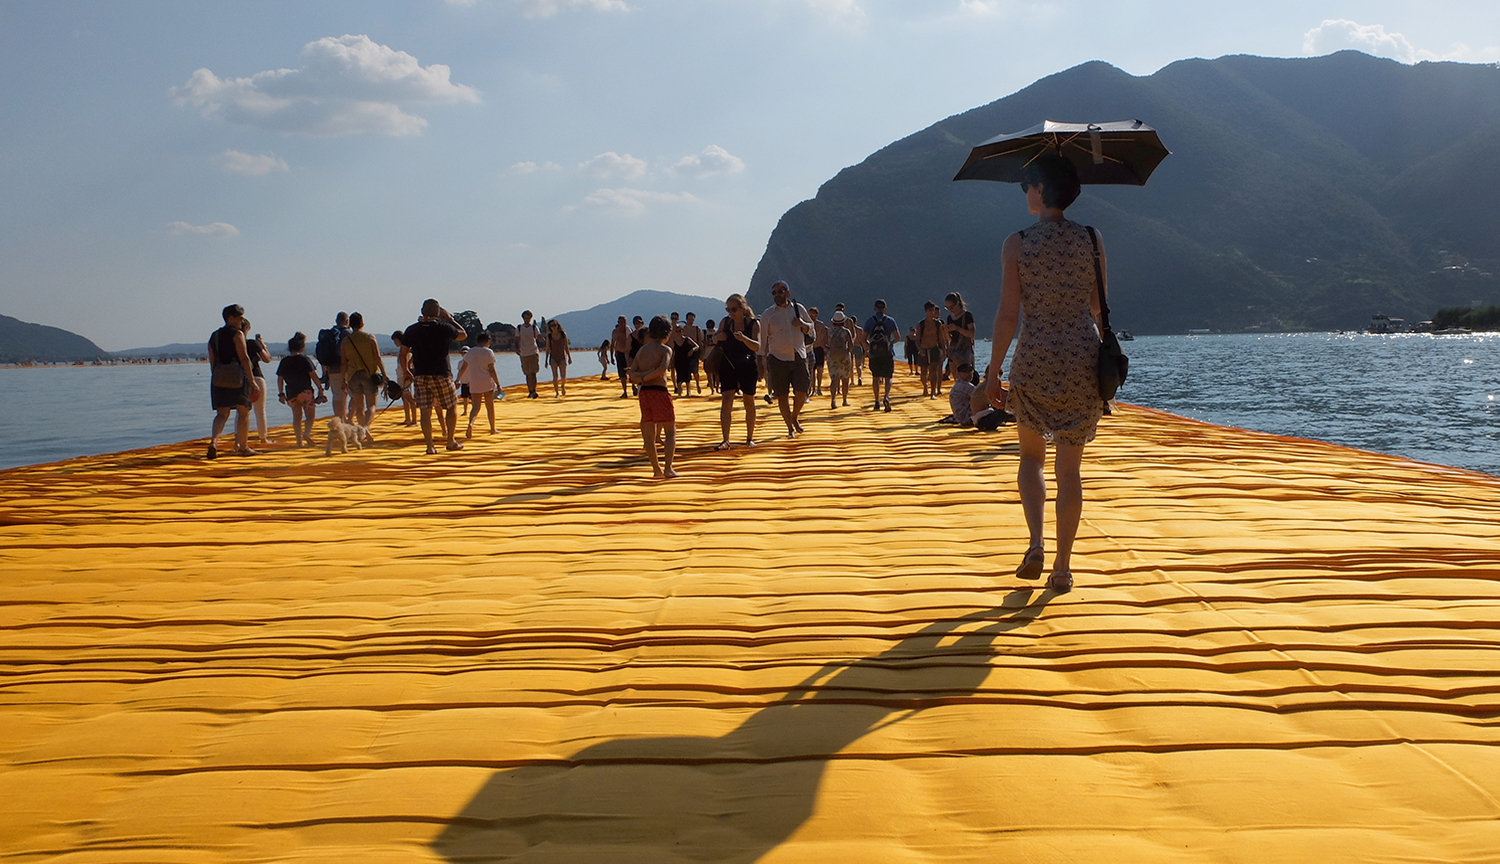 Floating Piers -  Lago d'Iseo 28.6.2016